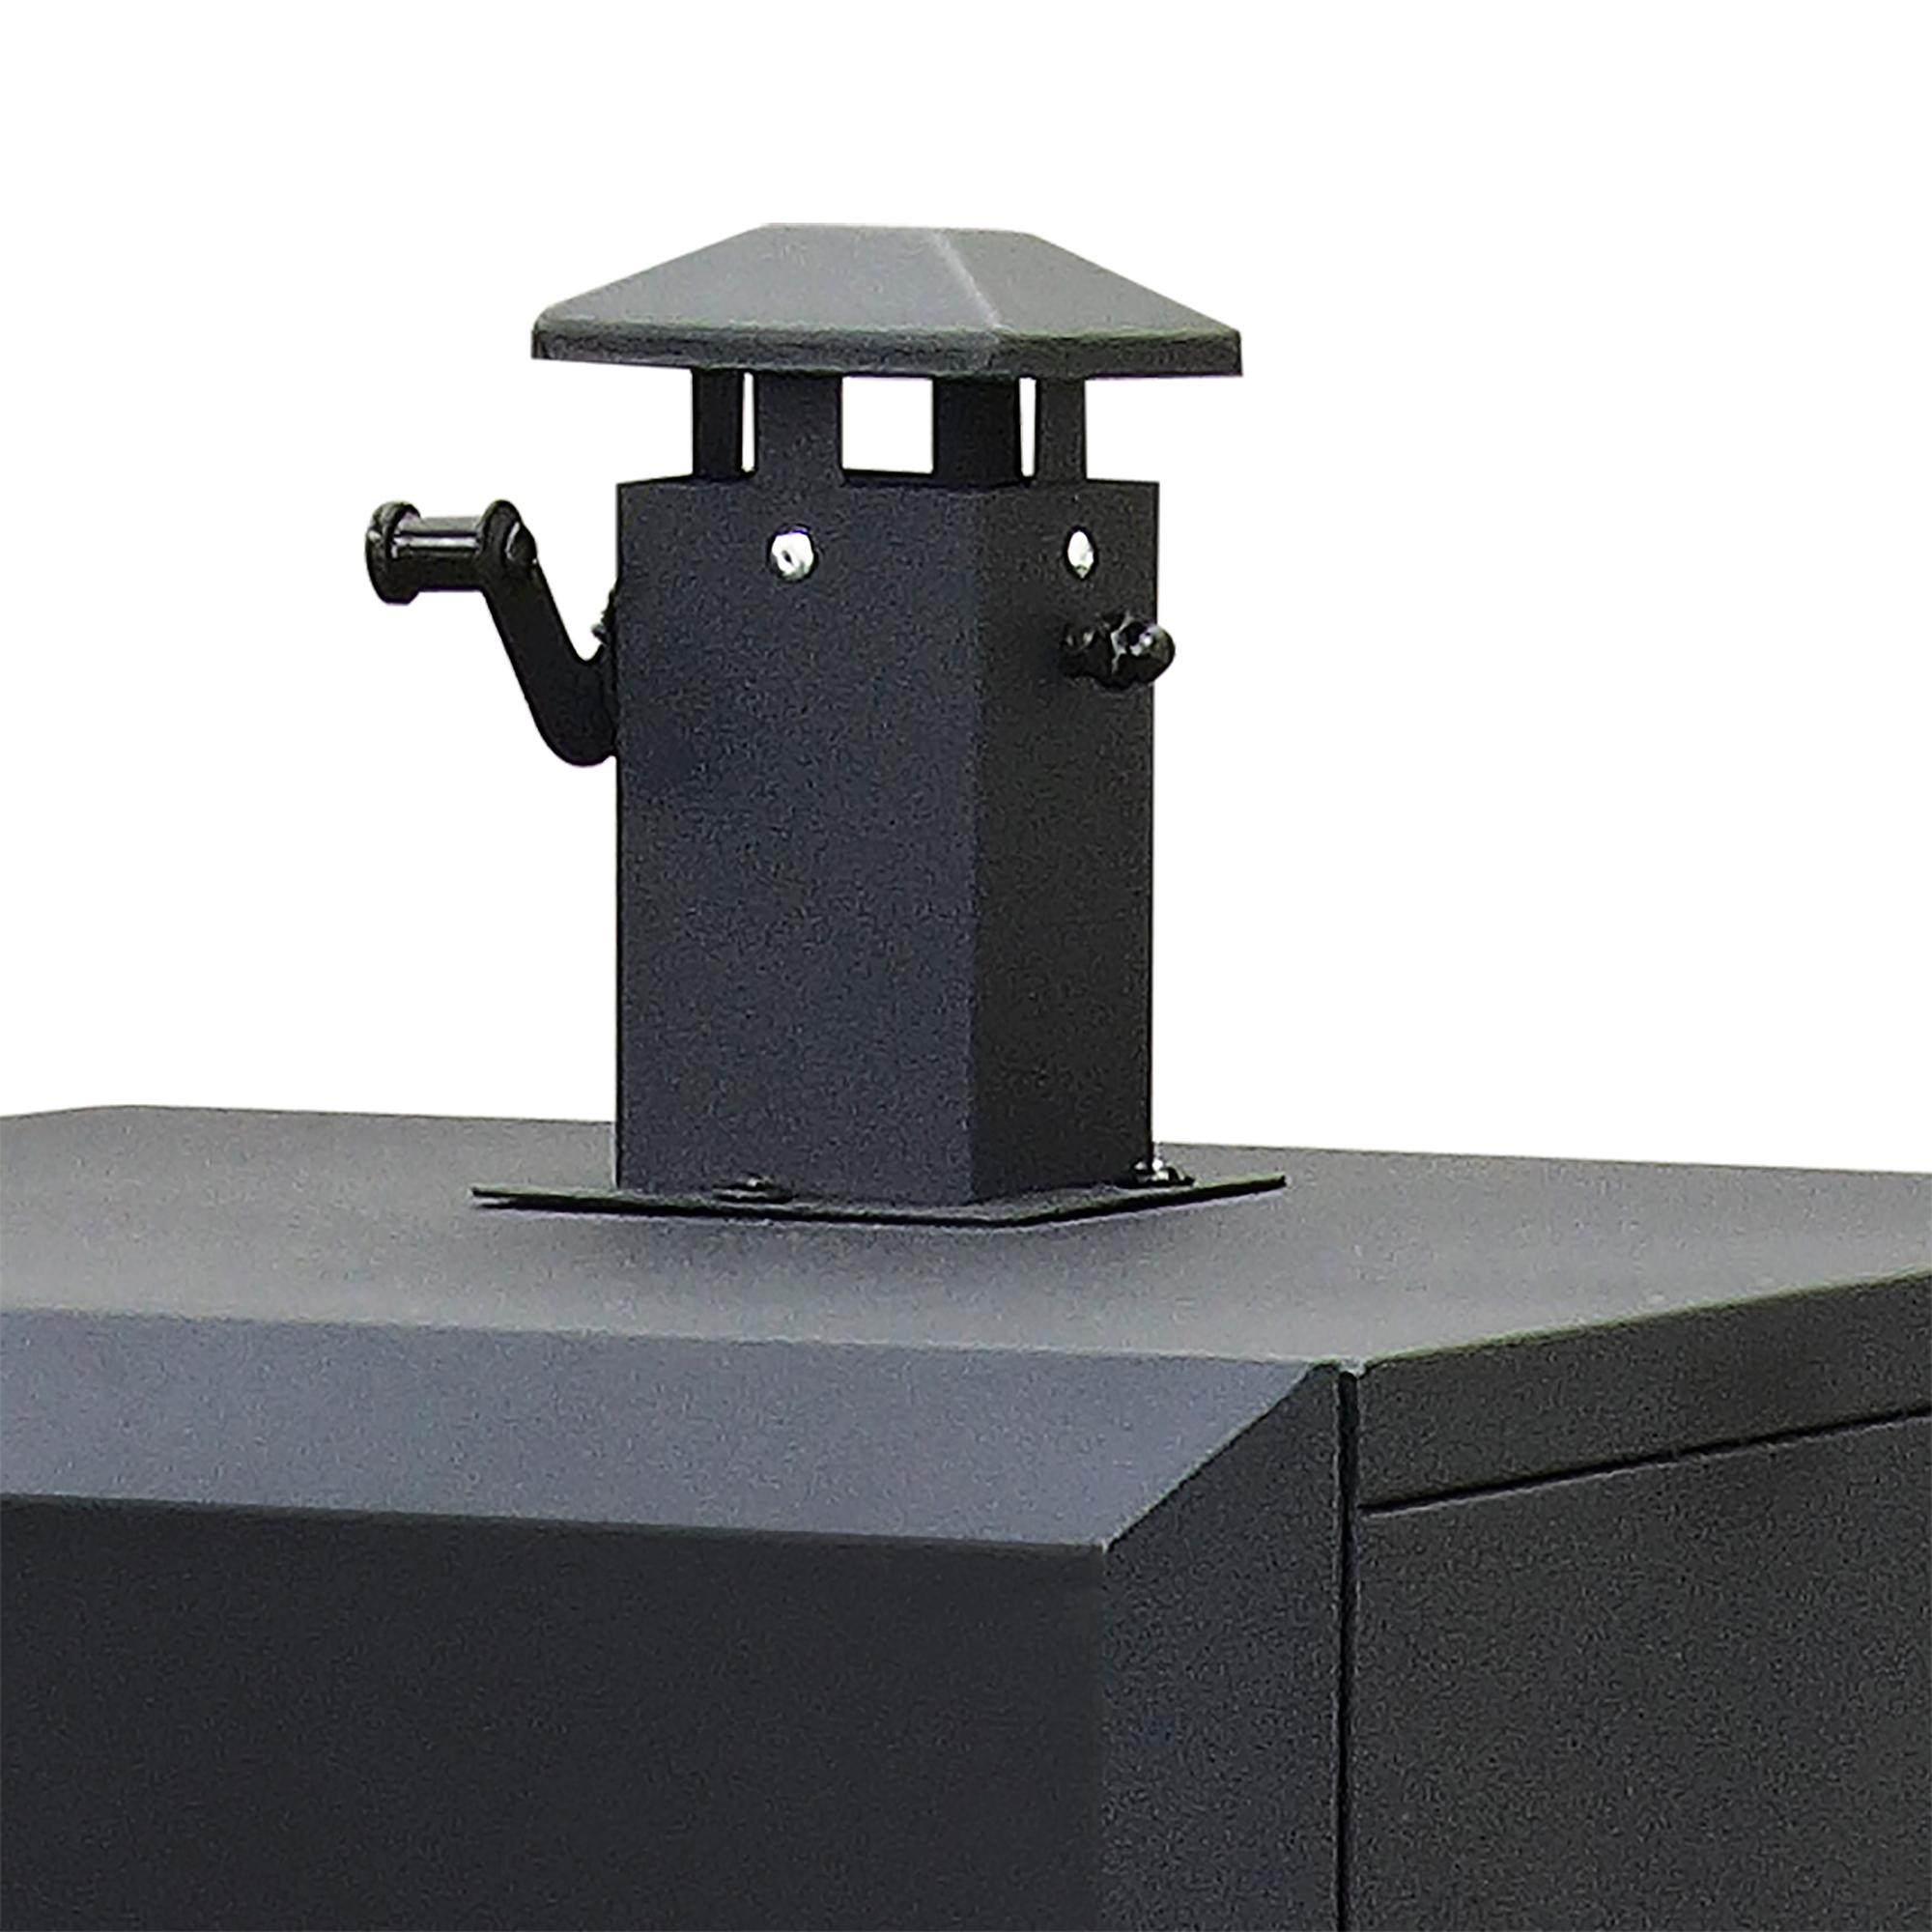 Dyna-Glo Wide Body Vertical Offset Charcoal Smoker DGO1890BDC-D - smokestack